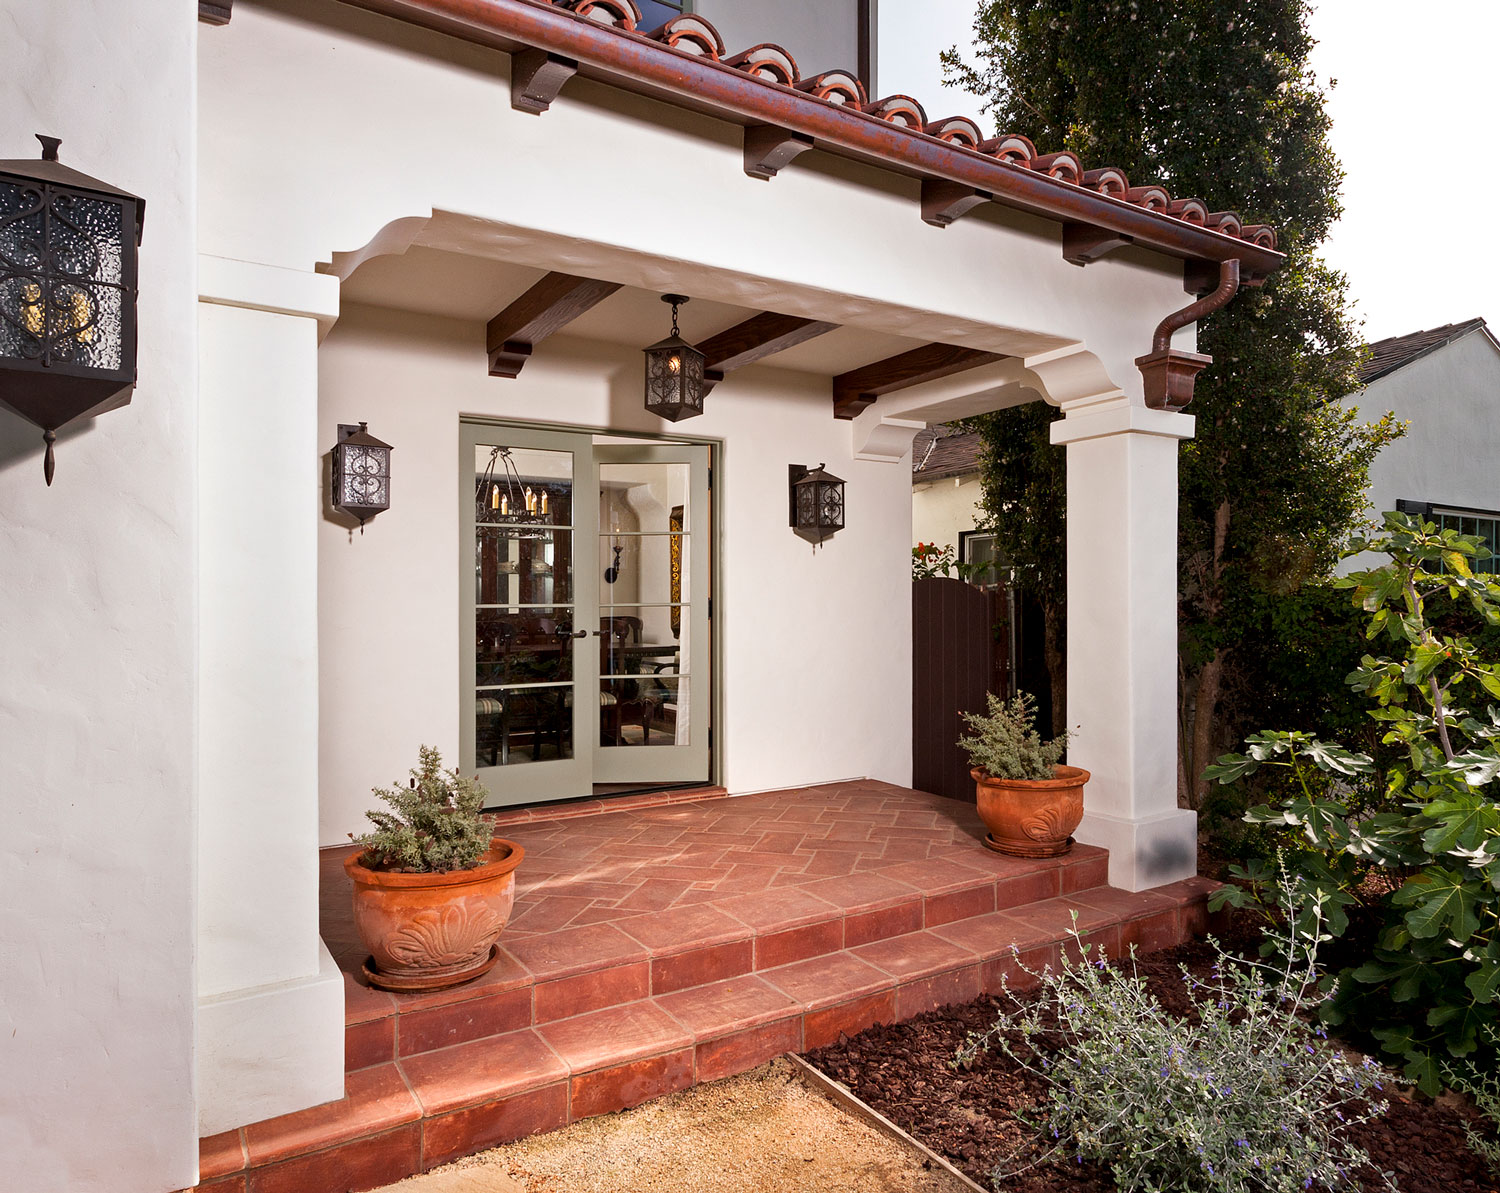 17-contemporary-spanish-tile-patio-french-doors-gary-drake-general-contractor.jpg